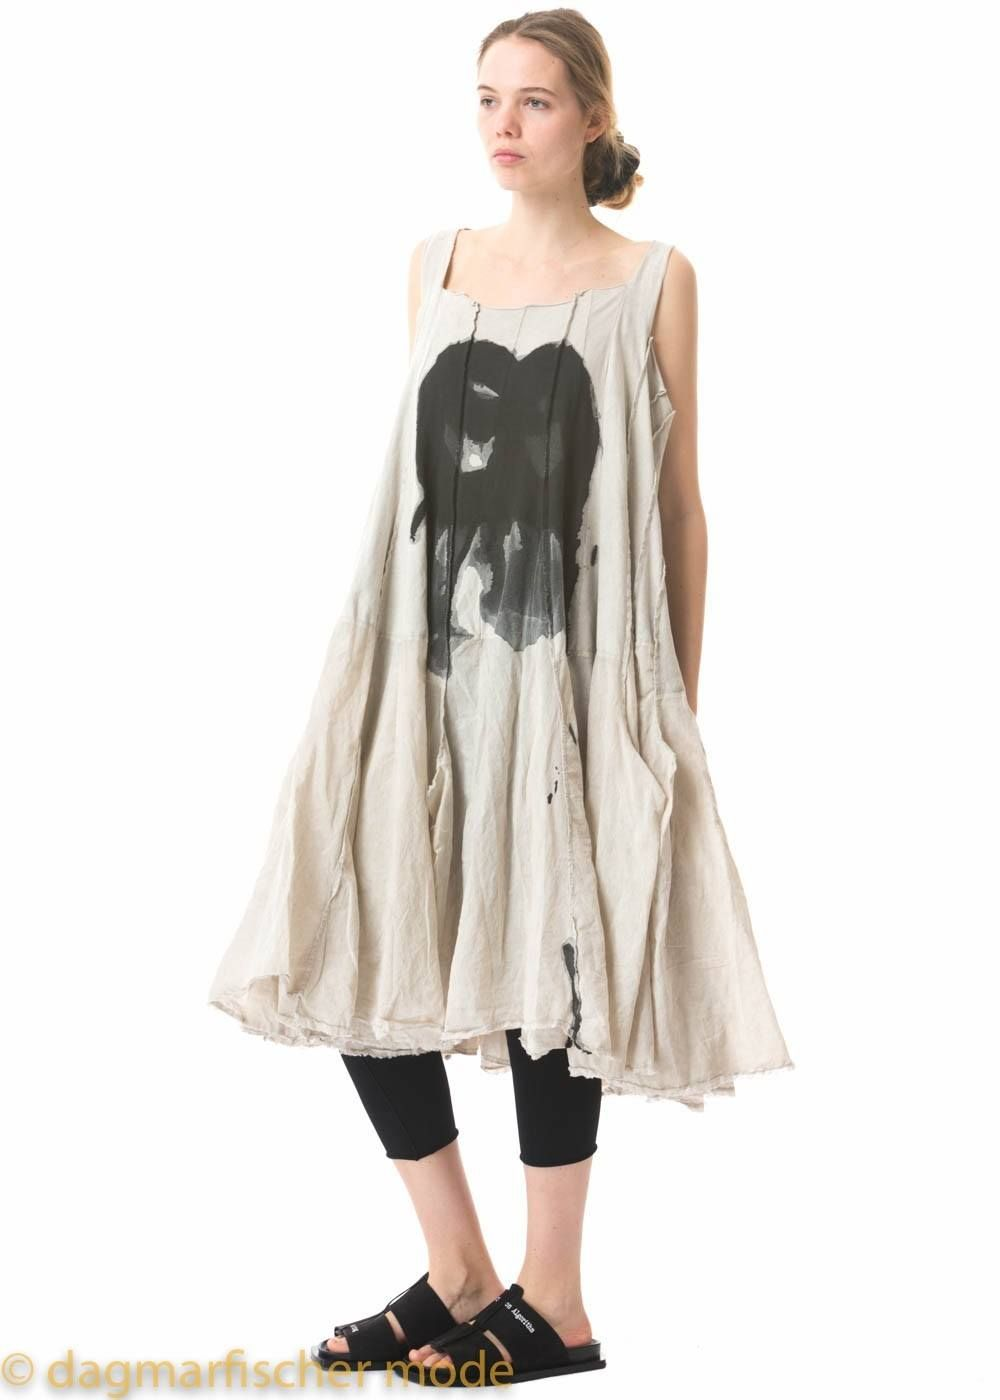 4866411c76c7f4 Printed oversize dress in coal and umbra by RUNDHOLZ DIP - dagmarfischer  mode